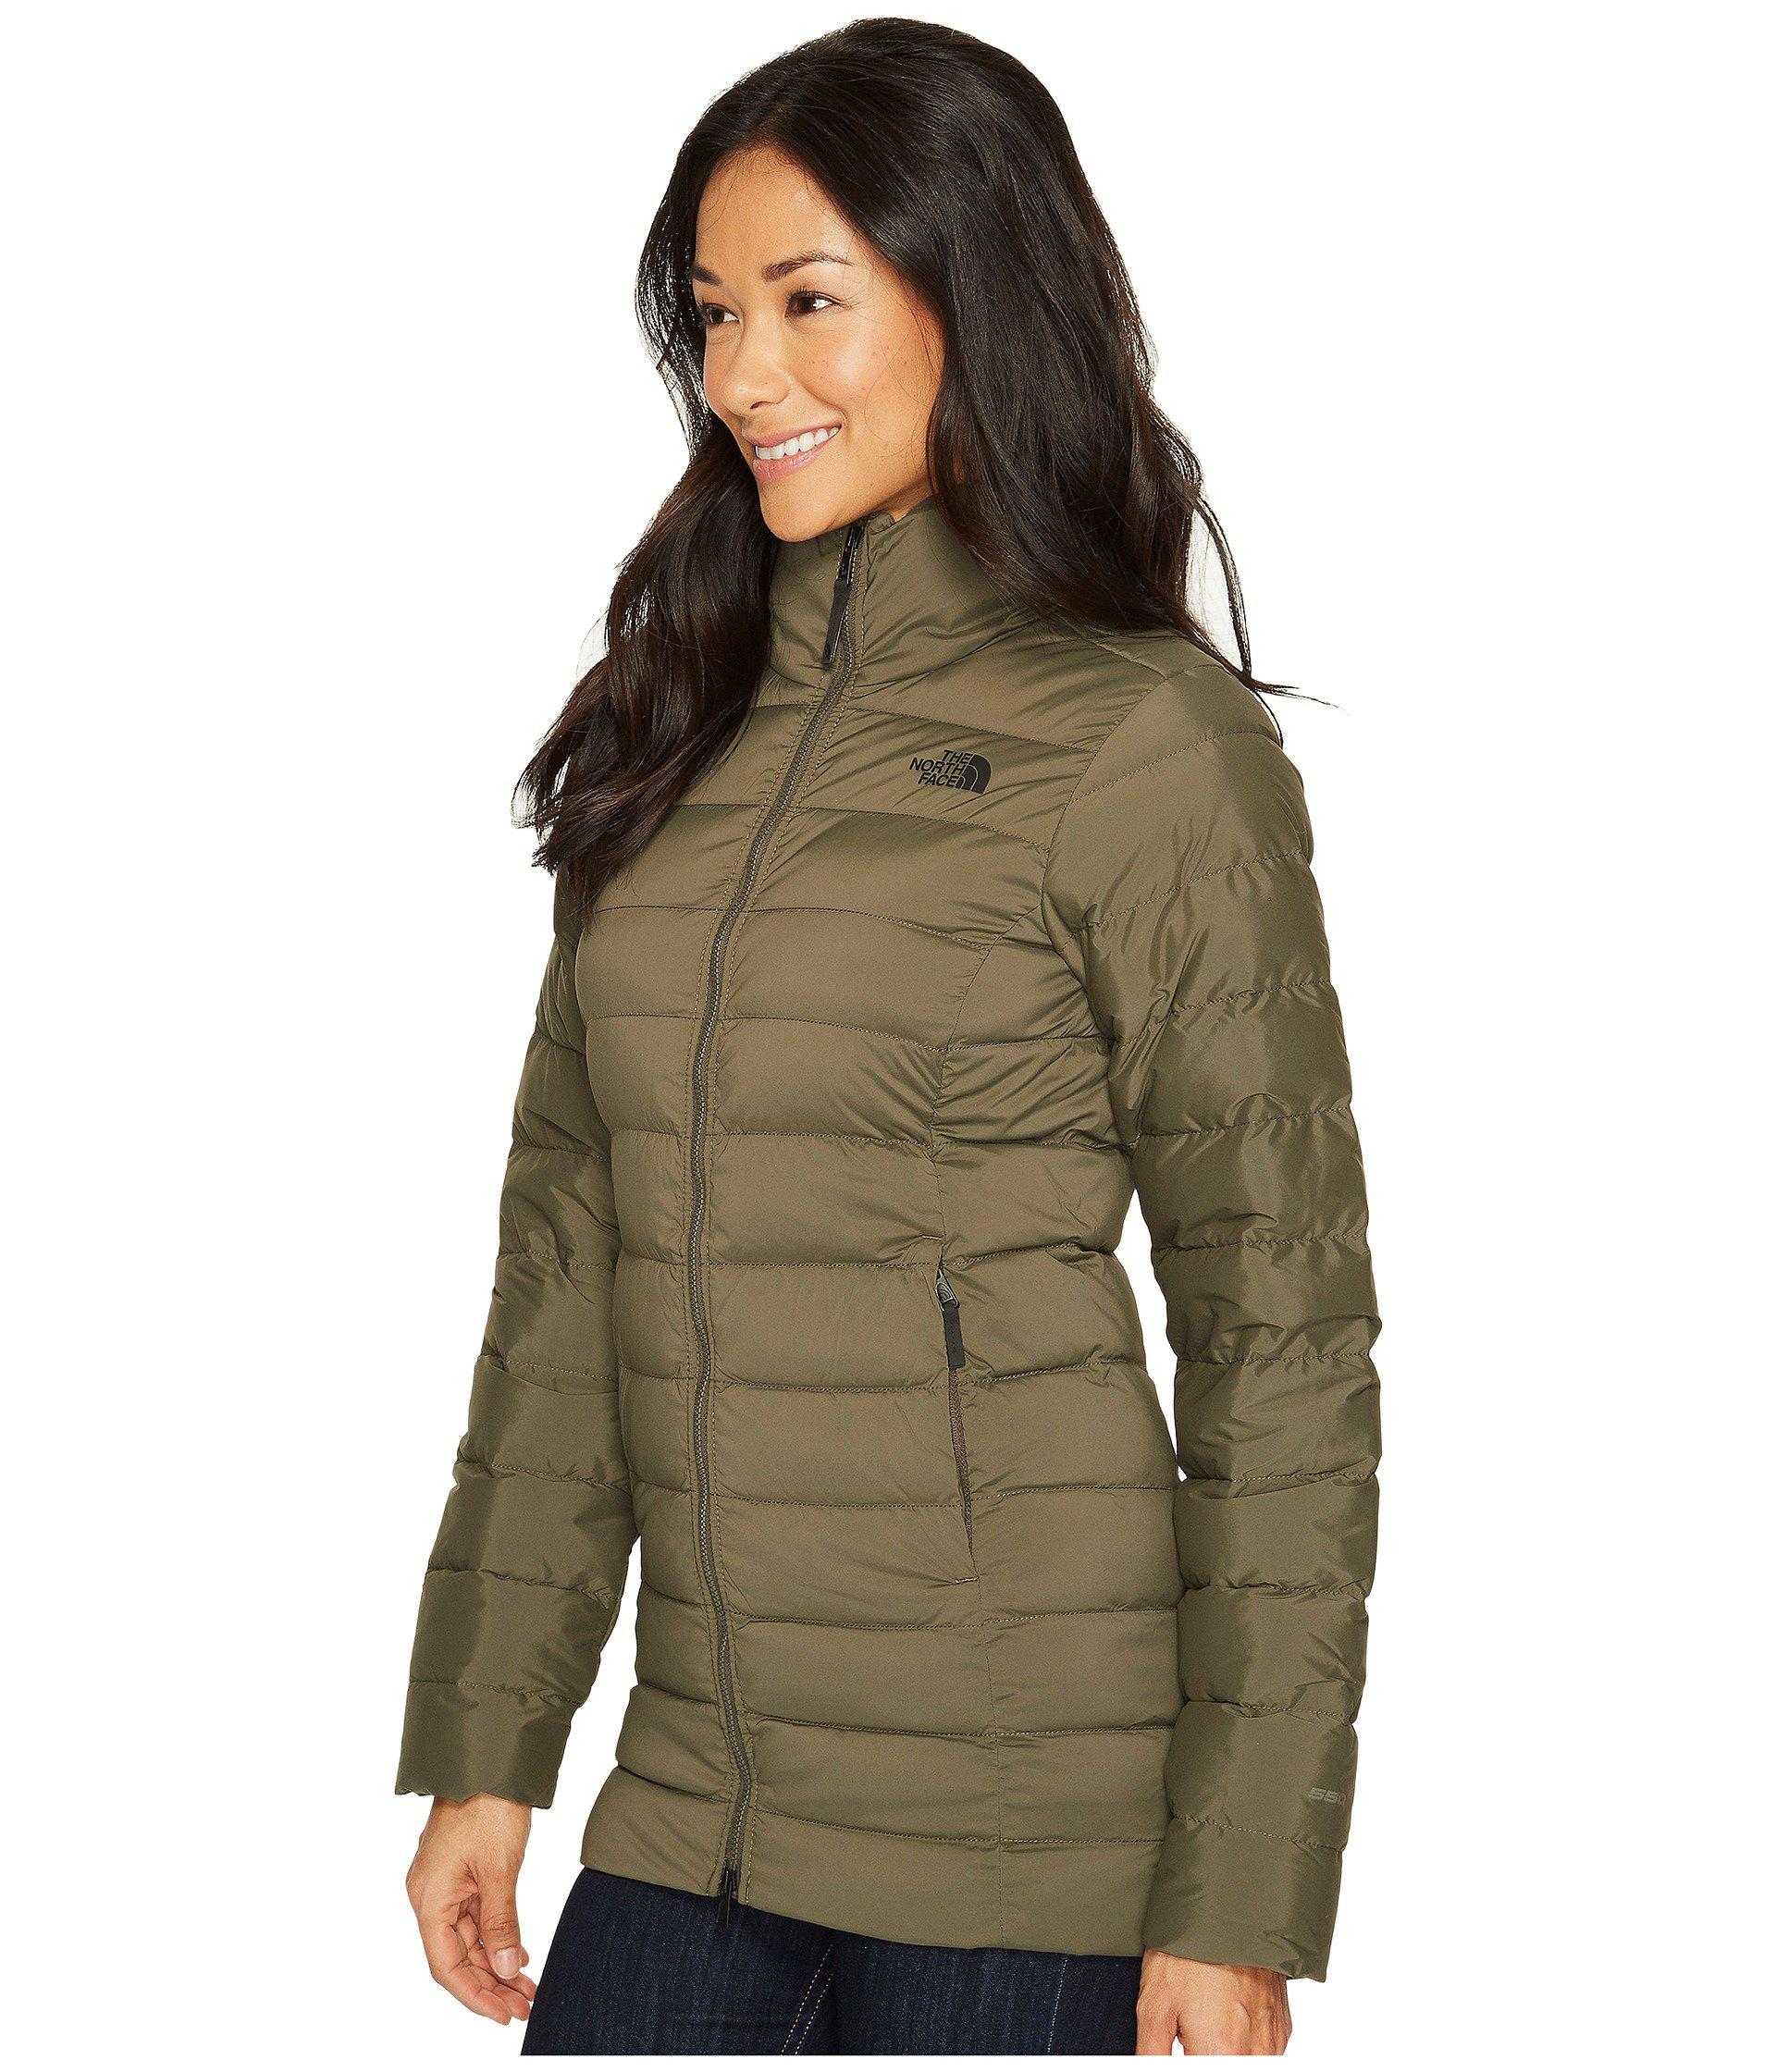 Lyst - The North Face Stretch Down Parka in Green - Save 29% c7dfa09ba